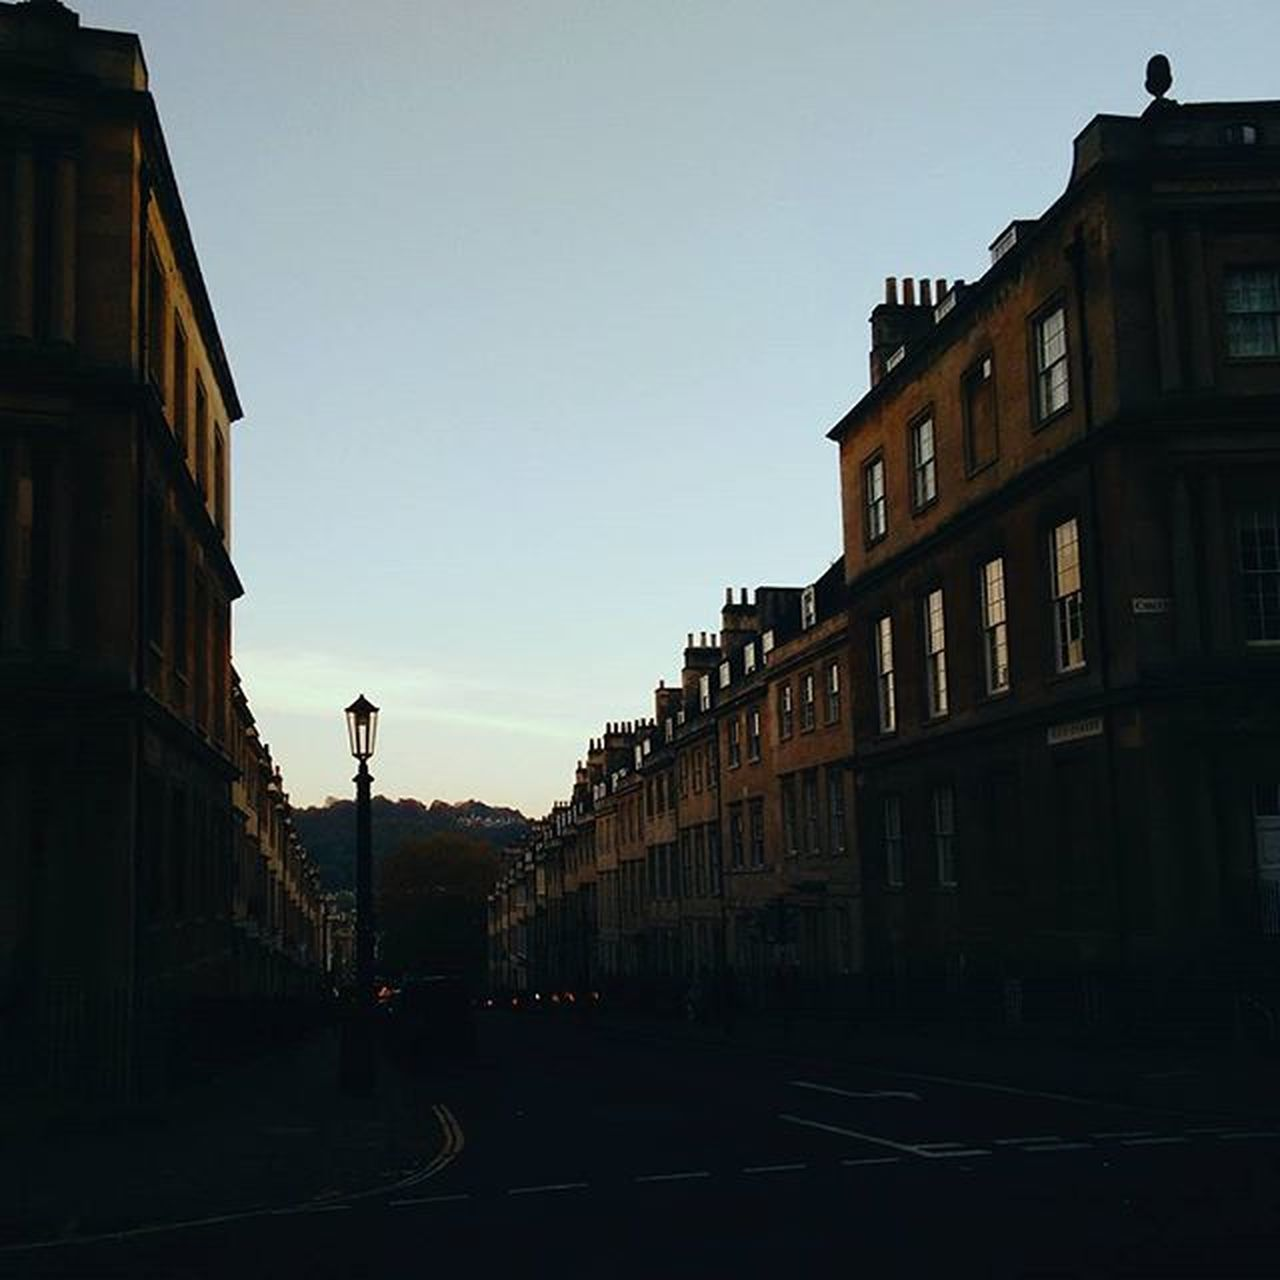 Goodnight, Bath 😸 Travel Exploreengland Vscocam Igtravel Vscofolk Travelgram Exporetocreat Justgoshoot